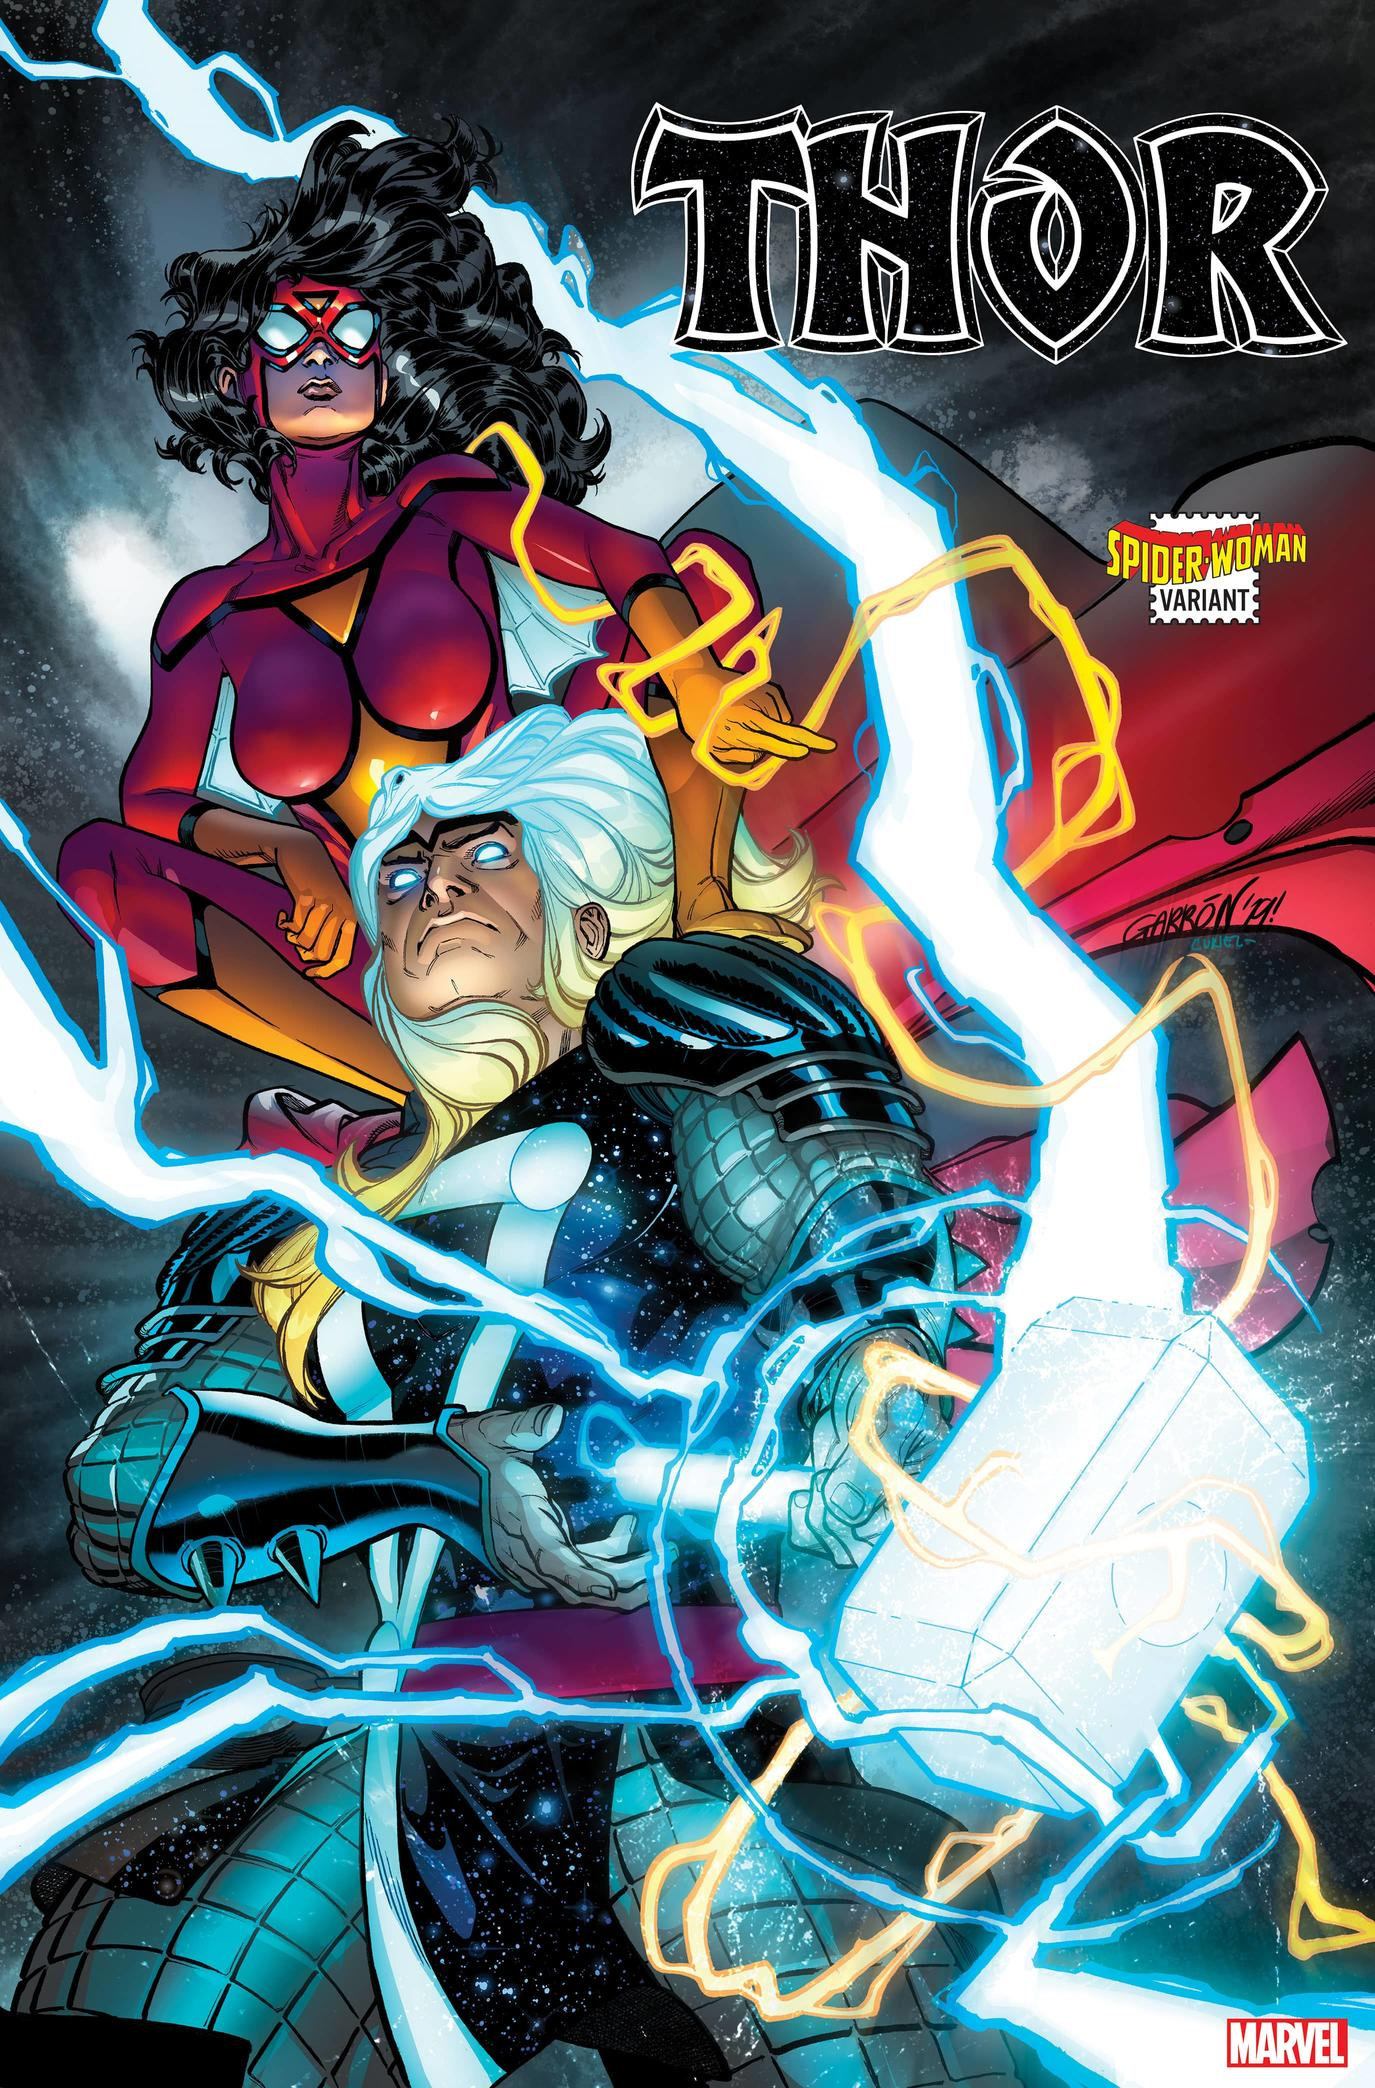 THOR #4 SPIDER-WOMAN VARIANT by JAVIER GARRÓN with colors by DAVID CURIEL